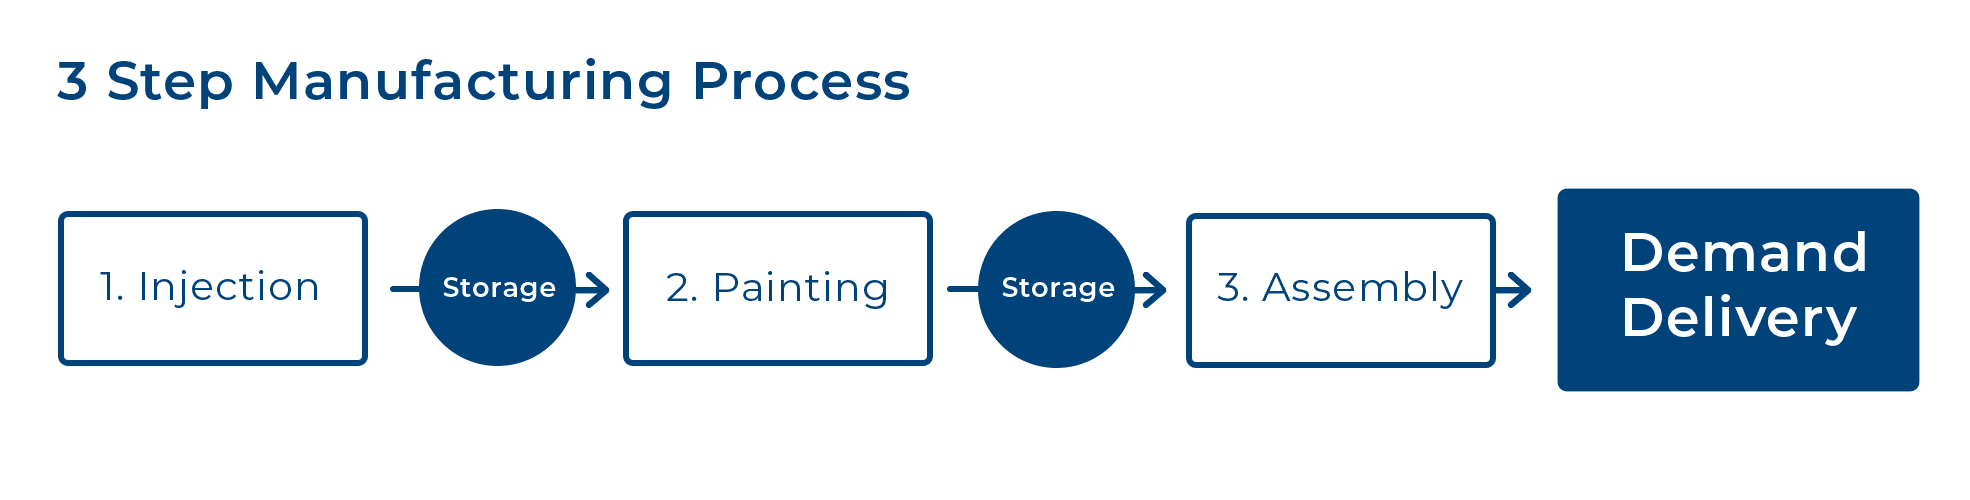 Manufacturing process involving 3 steps